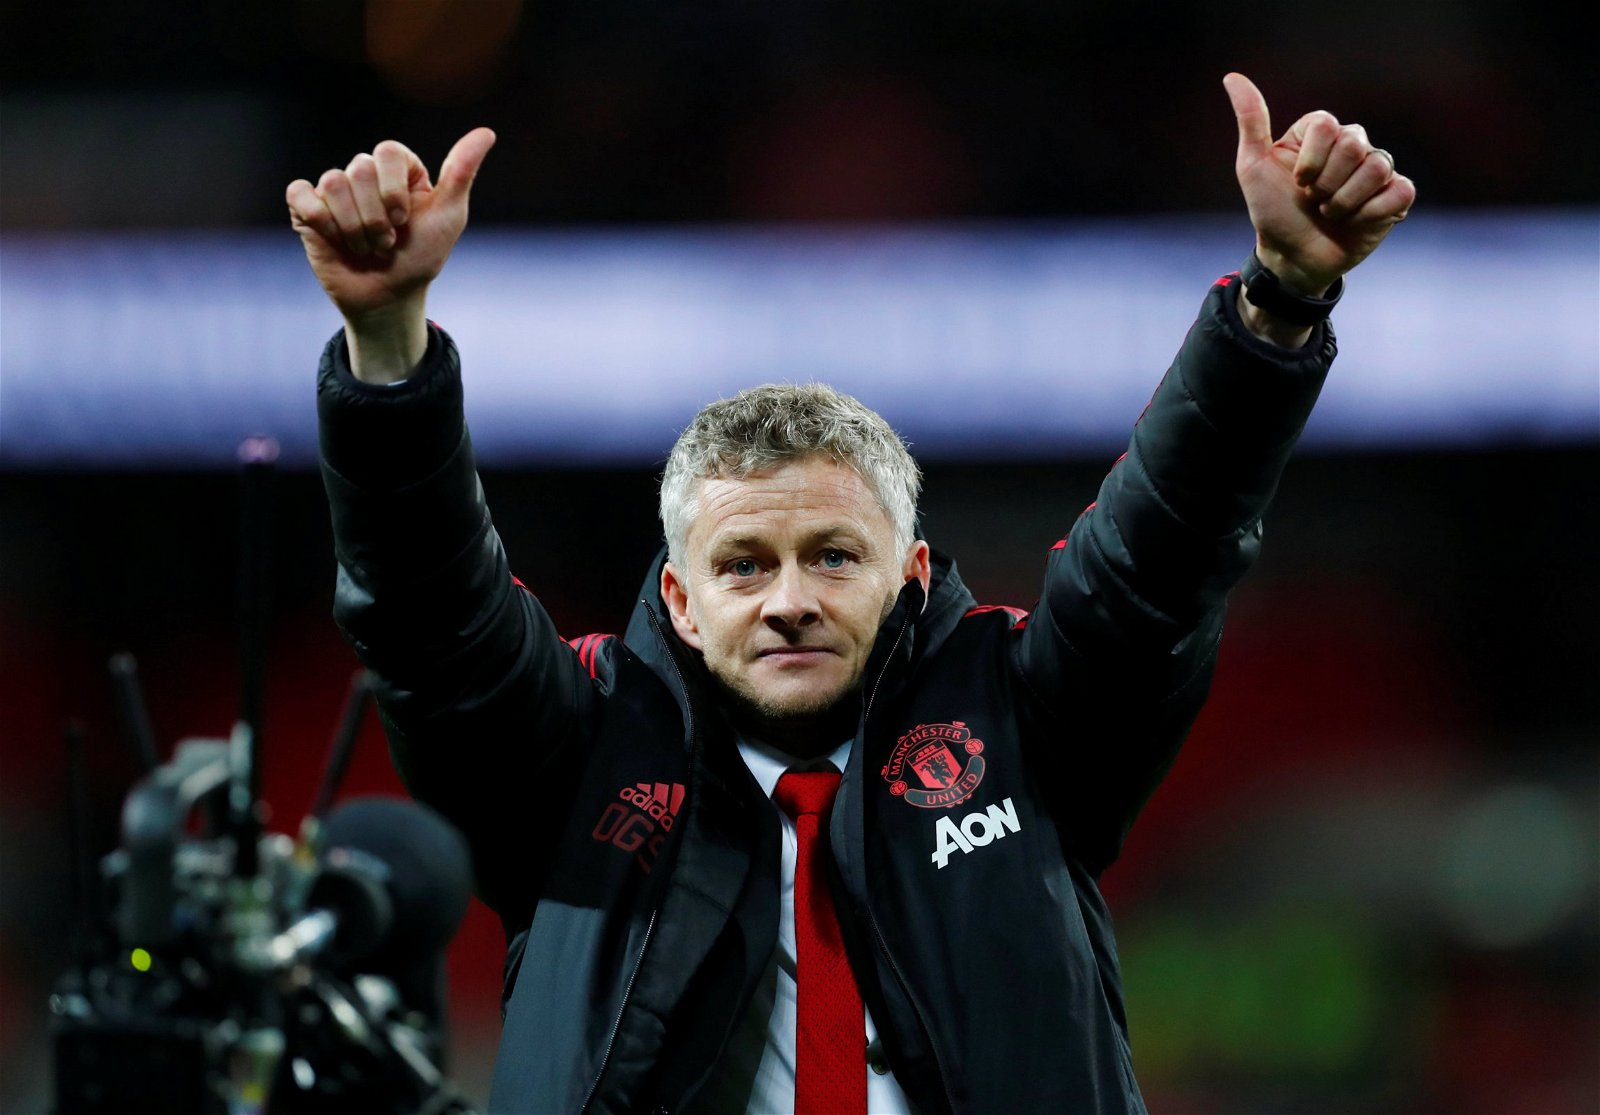 Ole Gunnar Solskjaer with his thumbs up to Manchester United fan